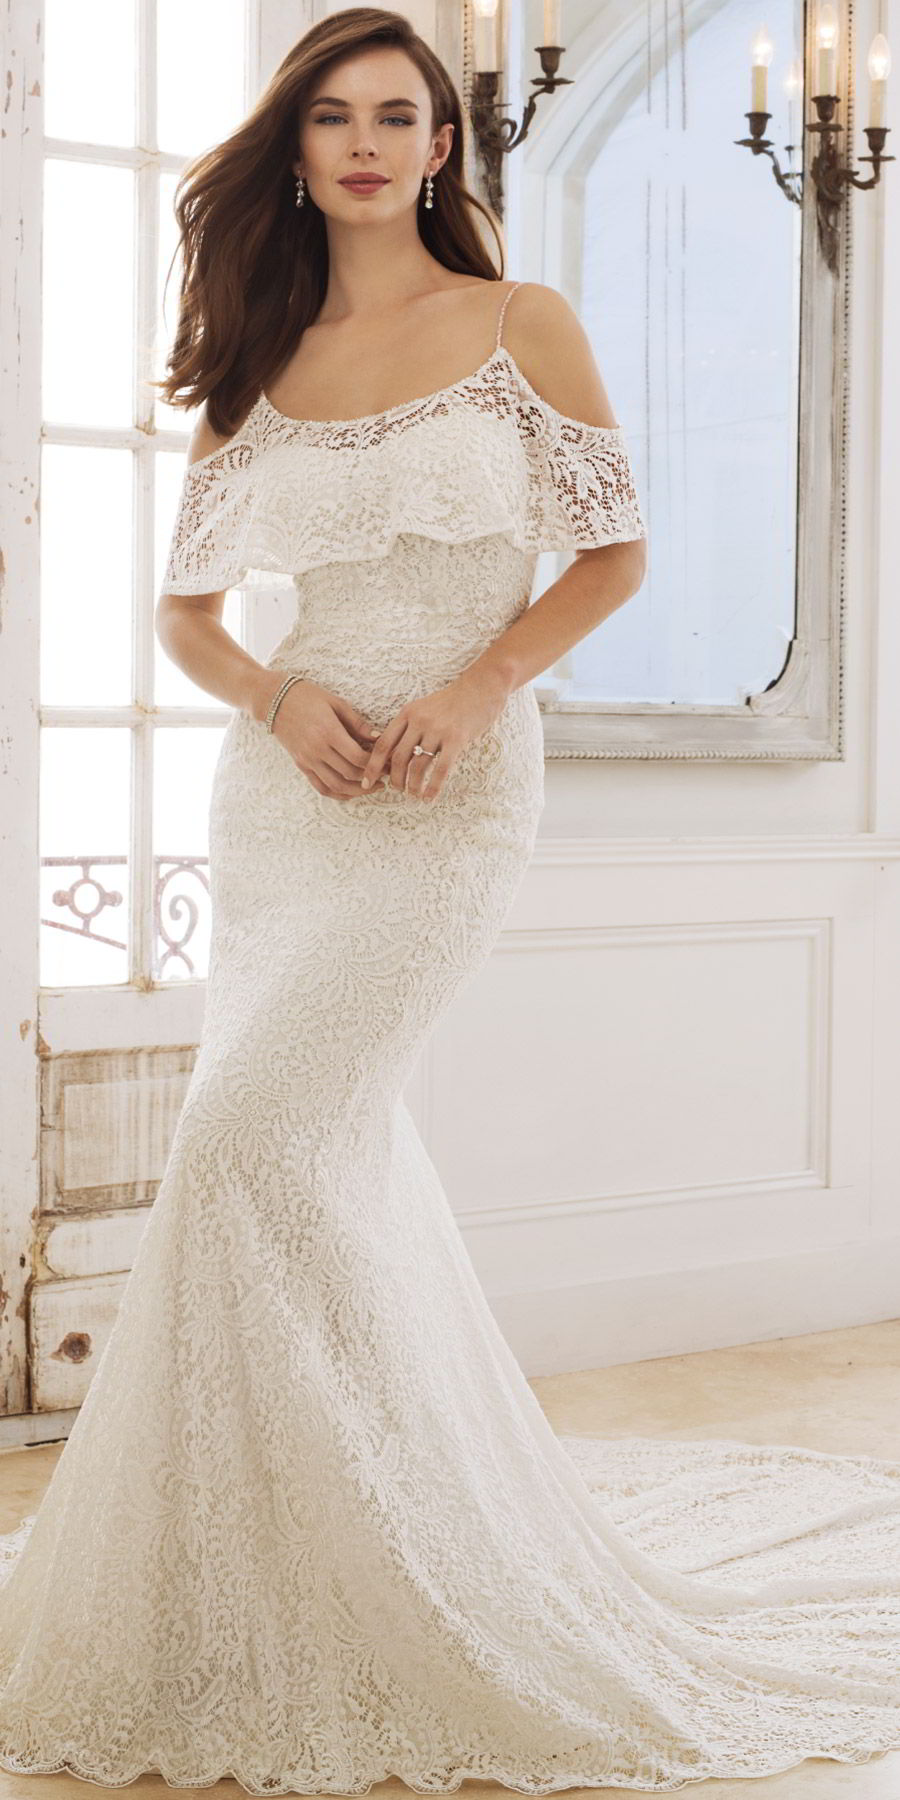 sophia tolli spring 2018 mon cheri bridals cold shoulder flutter sleeves beaded straps scoop neck sheath lace wedding dress (y11875 rhea) mv chapel train bohemian romantic